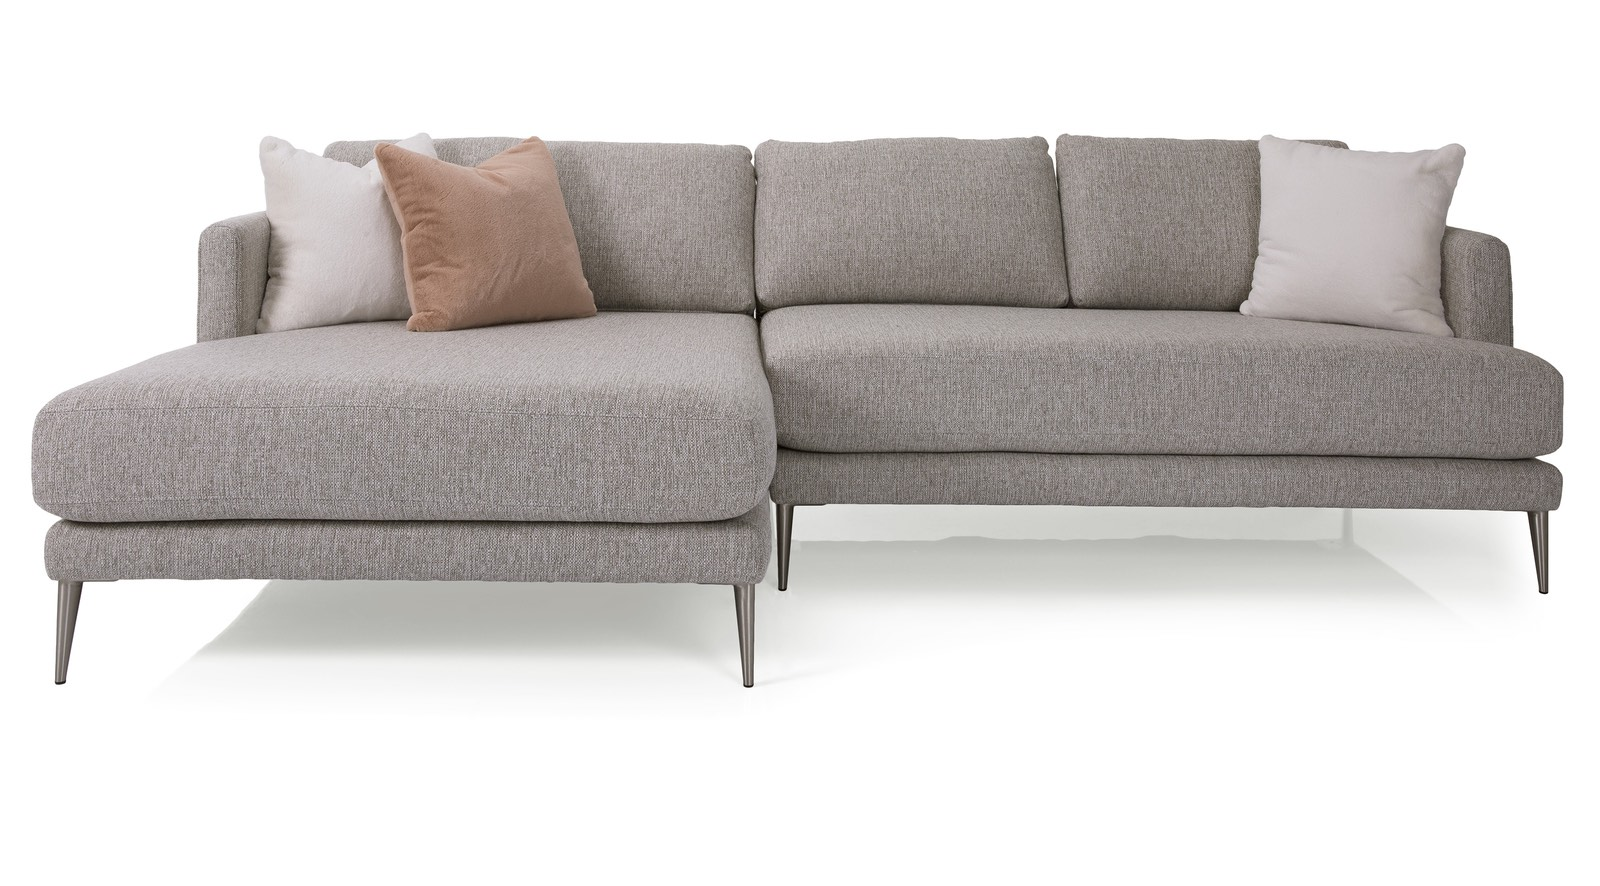 a perfect modern beige sofa for you living room